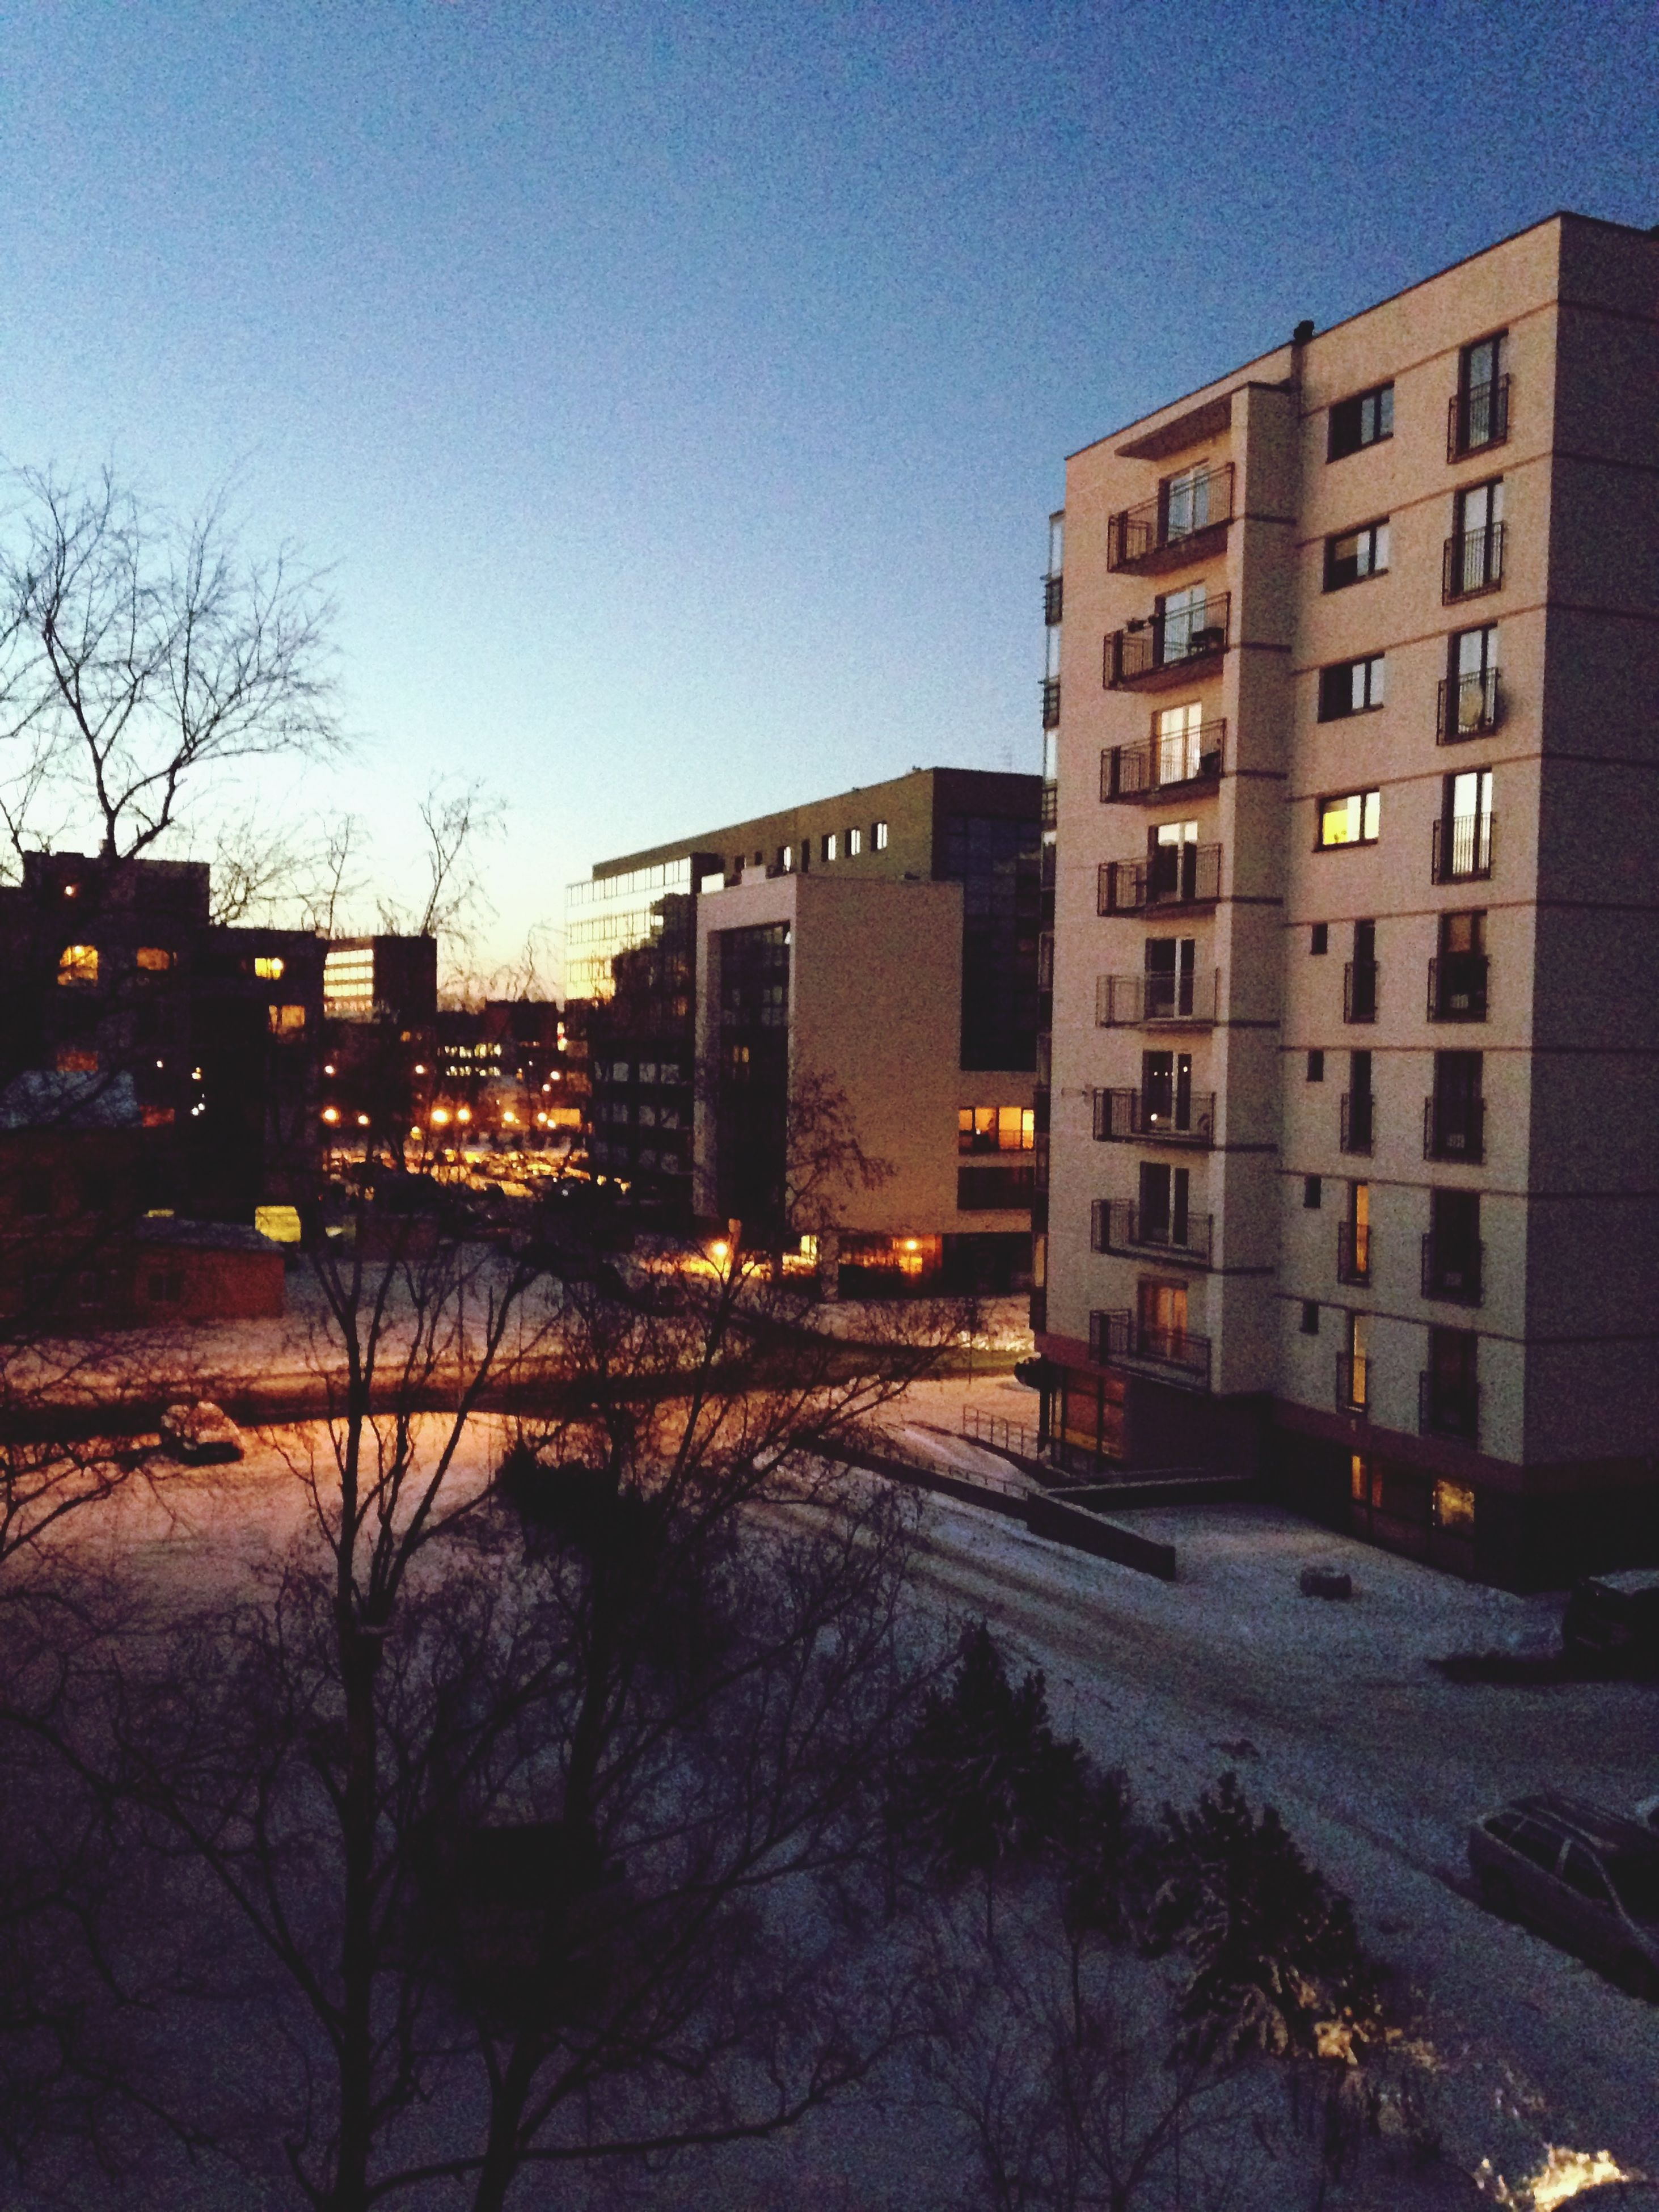 building exterior, architecture, built structure, bare tree, snow, winter, cold temperature, clear sky, city, season, residential building, residential structure, tree, street, house, building, residential district, sky, outdoors, dusk